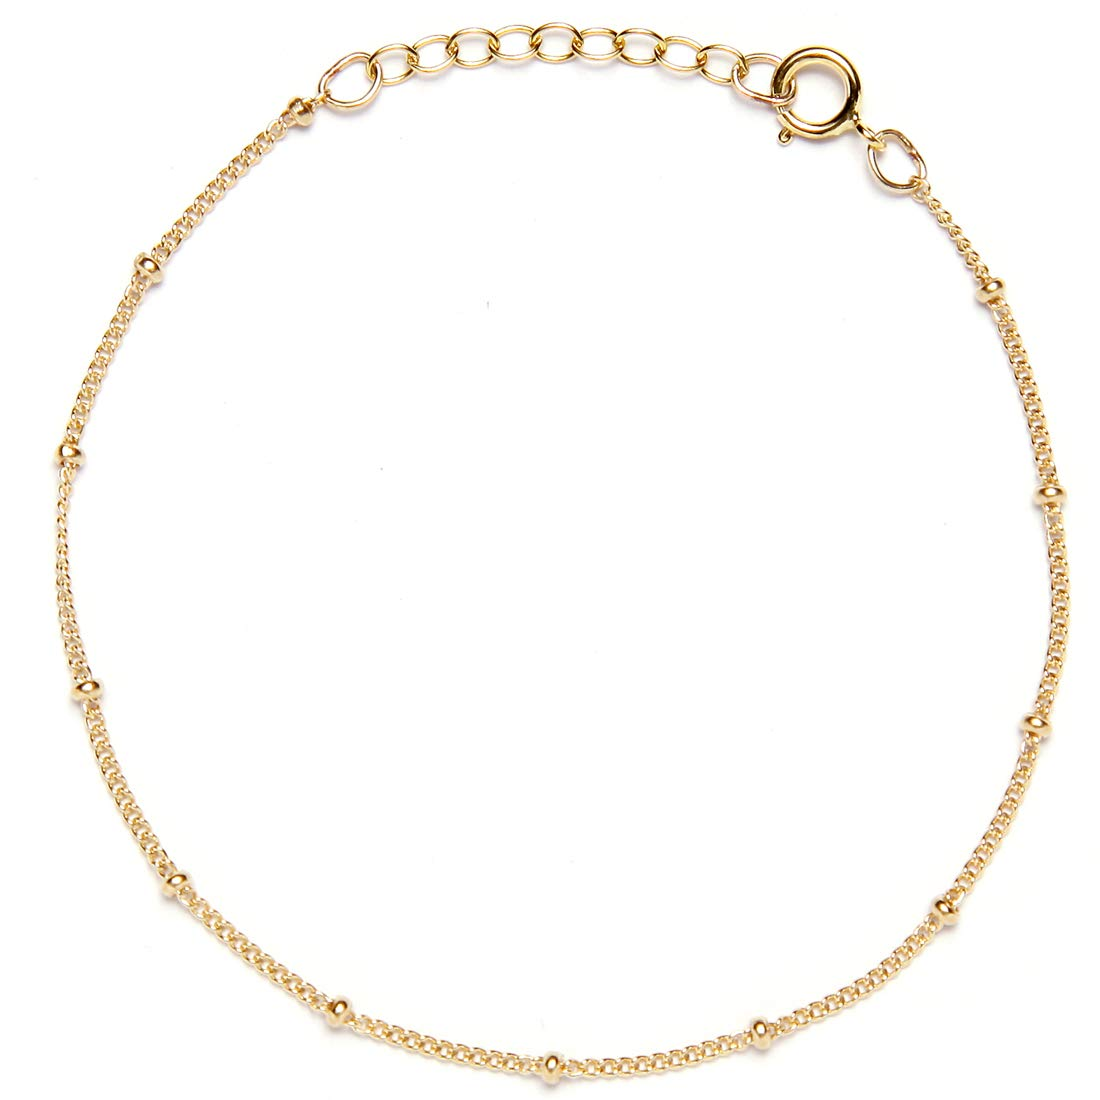 BENIQUE Dainty Bracelet for Women, 925 Sterling Silver, 14K Gold Filled, Rose Gold Filled, Minimalist Chain Jewelry for Layering, Made in USA, 6.5''+1'' Adjustable Extender (14K Gold Filled)